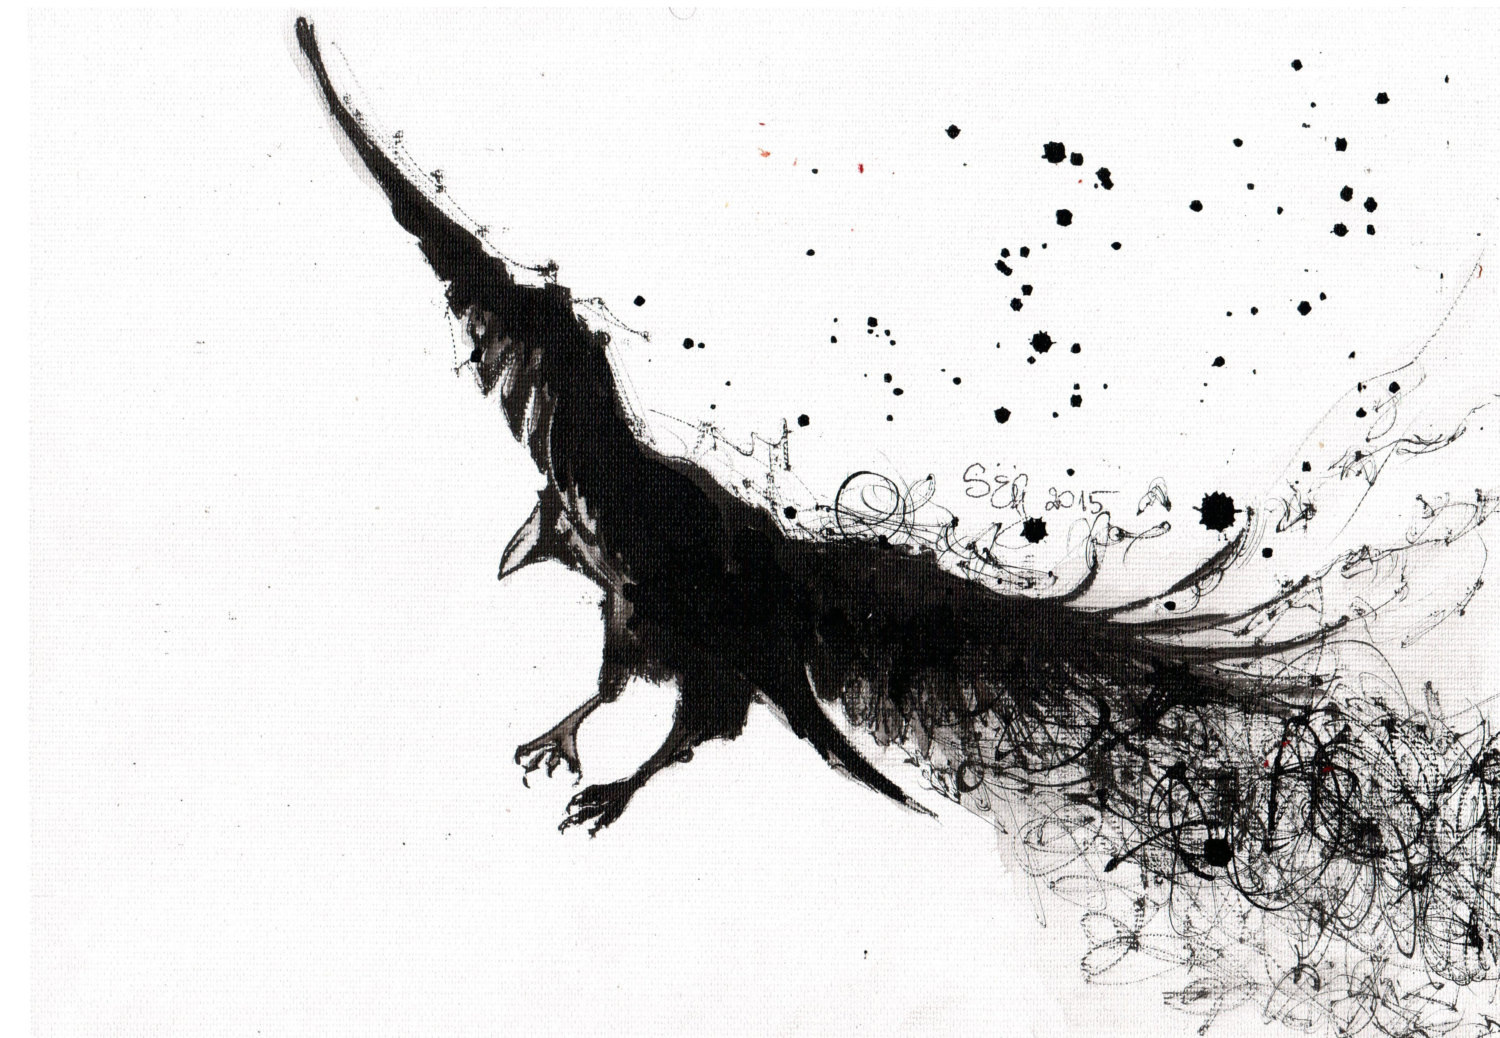 Drawn raven ink splatter RESERVED on A4 canvas drawing